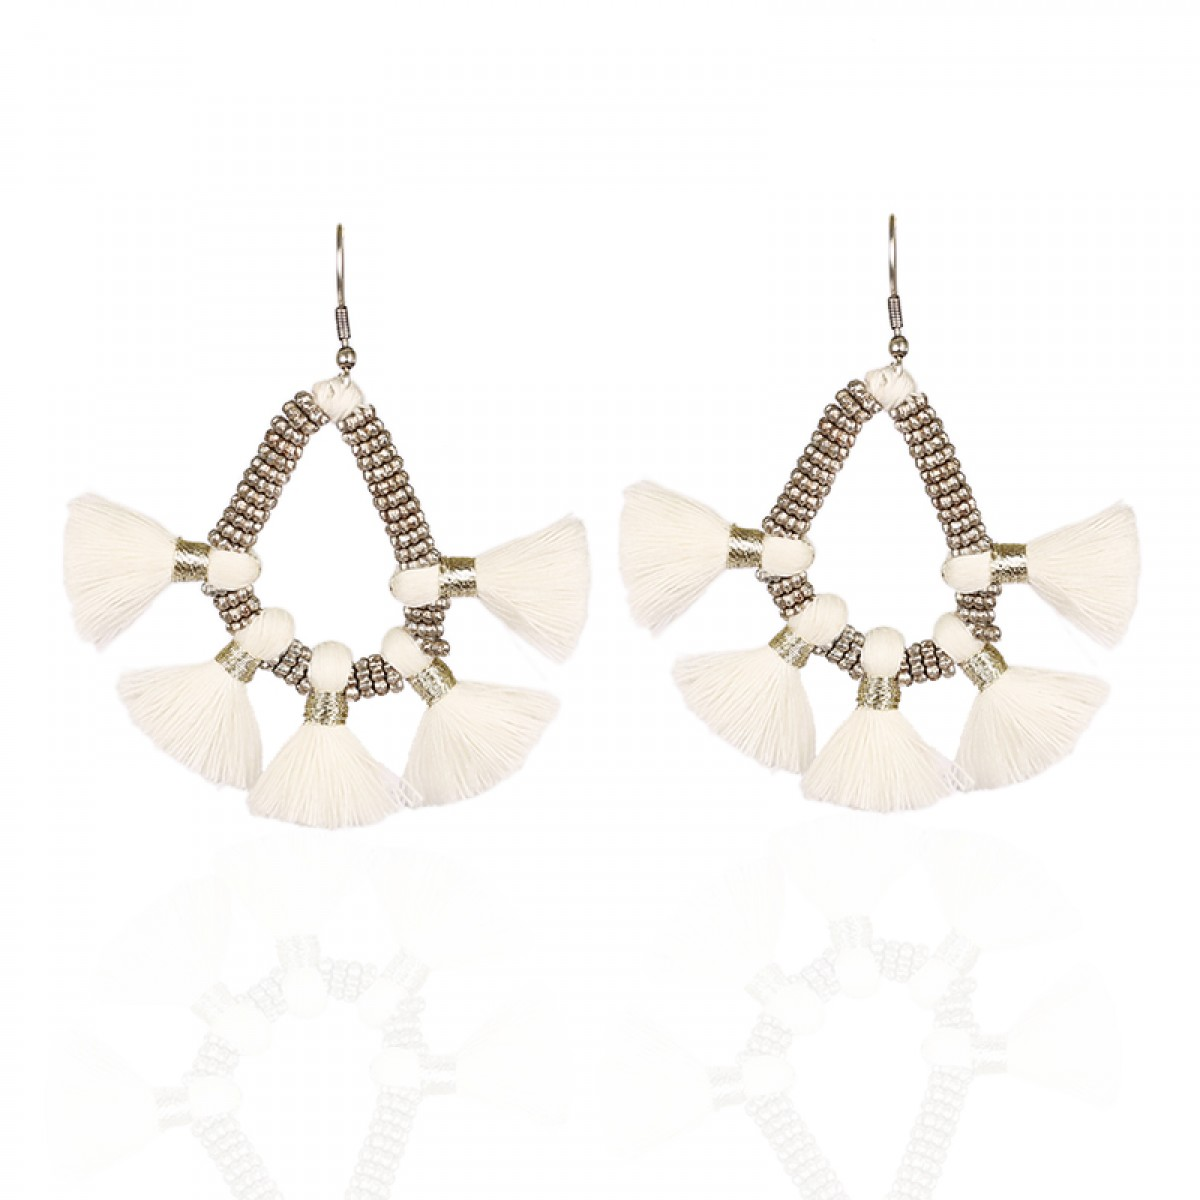 Bohemian Fashion Tassel Earrings - White